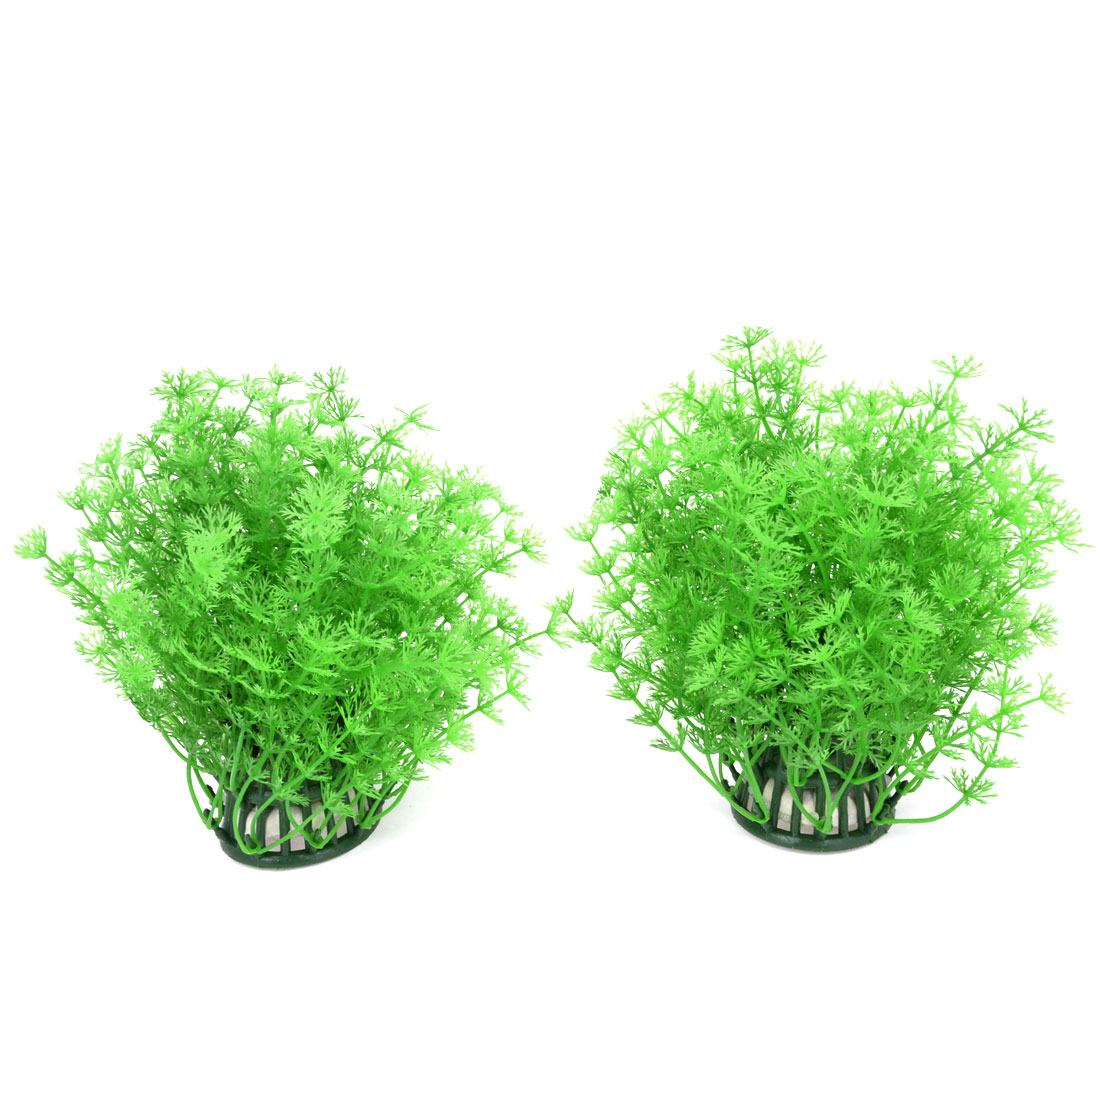 Fish Tank Green Artificial Water Grass Ornament 18cm Height 2PCS